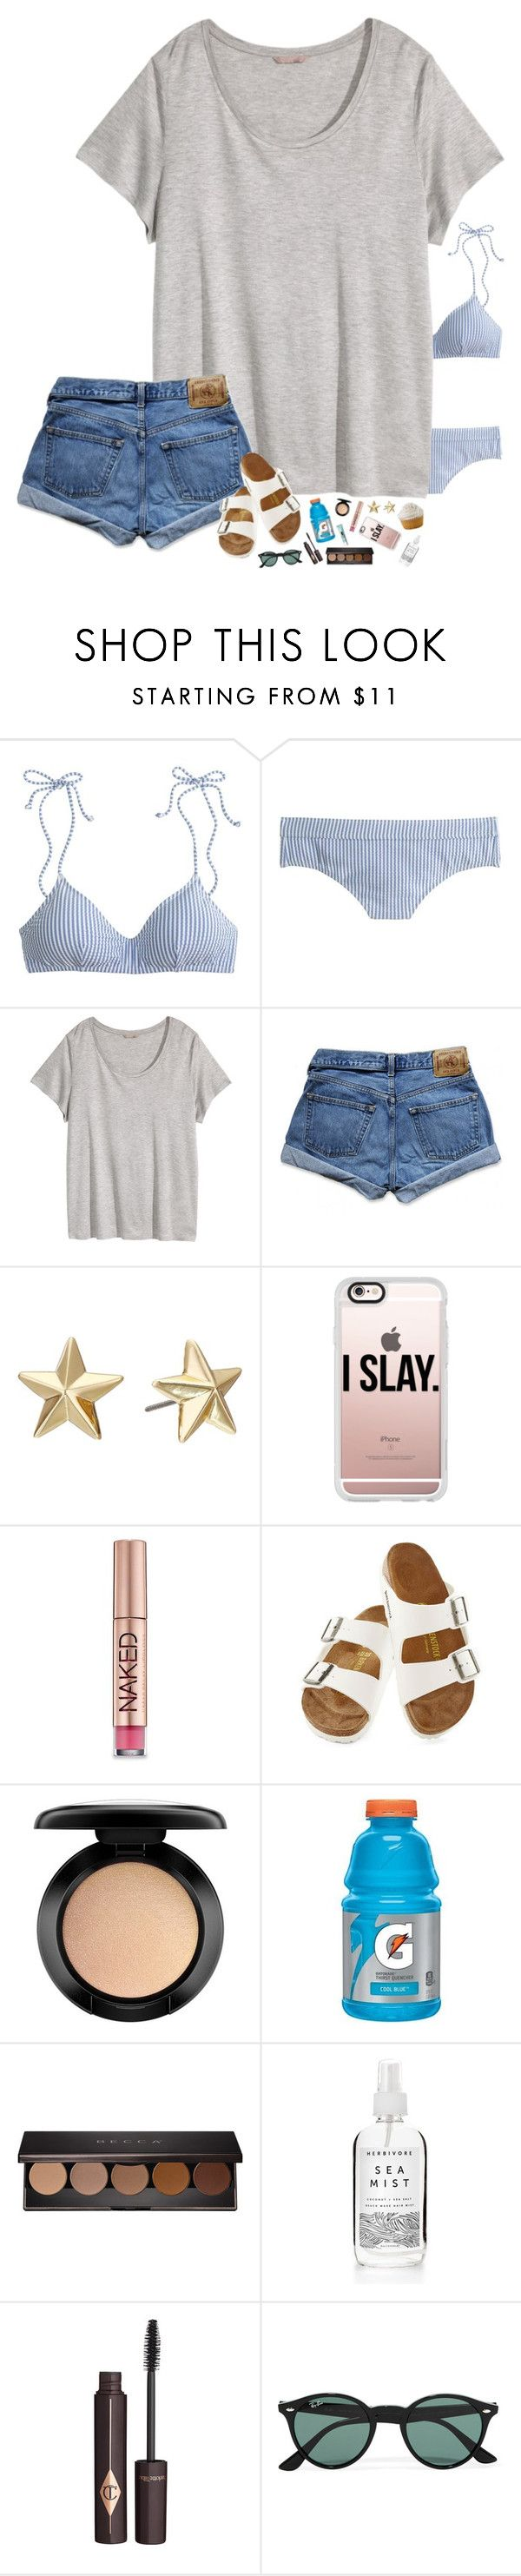 """""""GUYS WE'RE 7 AWAY FROM 1K!!!"""" by hopemarlee ❤ liked on Polyvore featuring J.Crew, H&M, Abercrombie & Fitch, Rebecca Minkoff, Casetify, Urban Decay, Birkenstock, MAC Cosmetics, Becca and Charlotte Tilbury"""